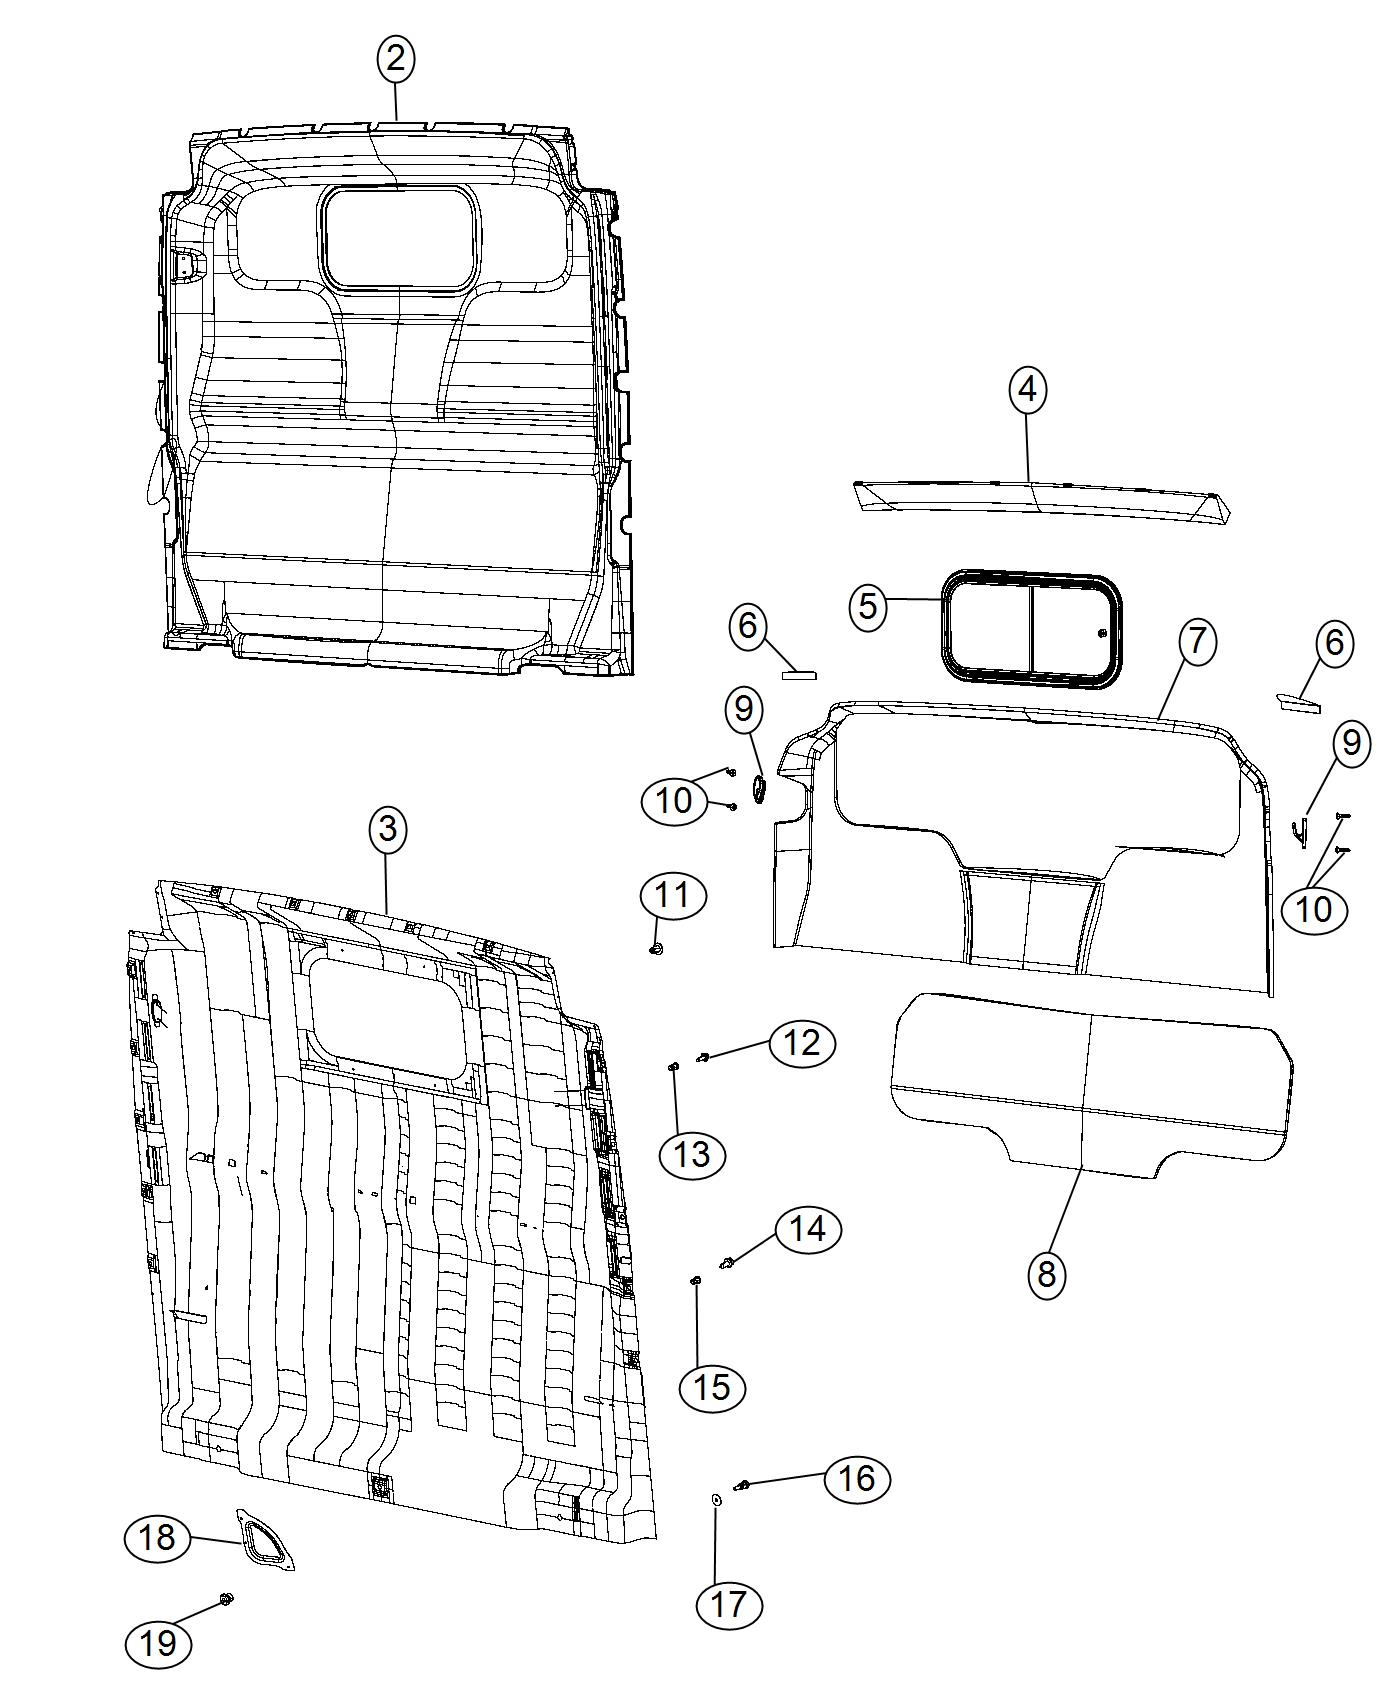 [DIAGRAM] 2012 Dodge 5500 Fuse Box Diagram FULL Version HD